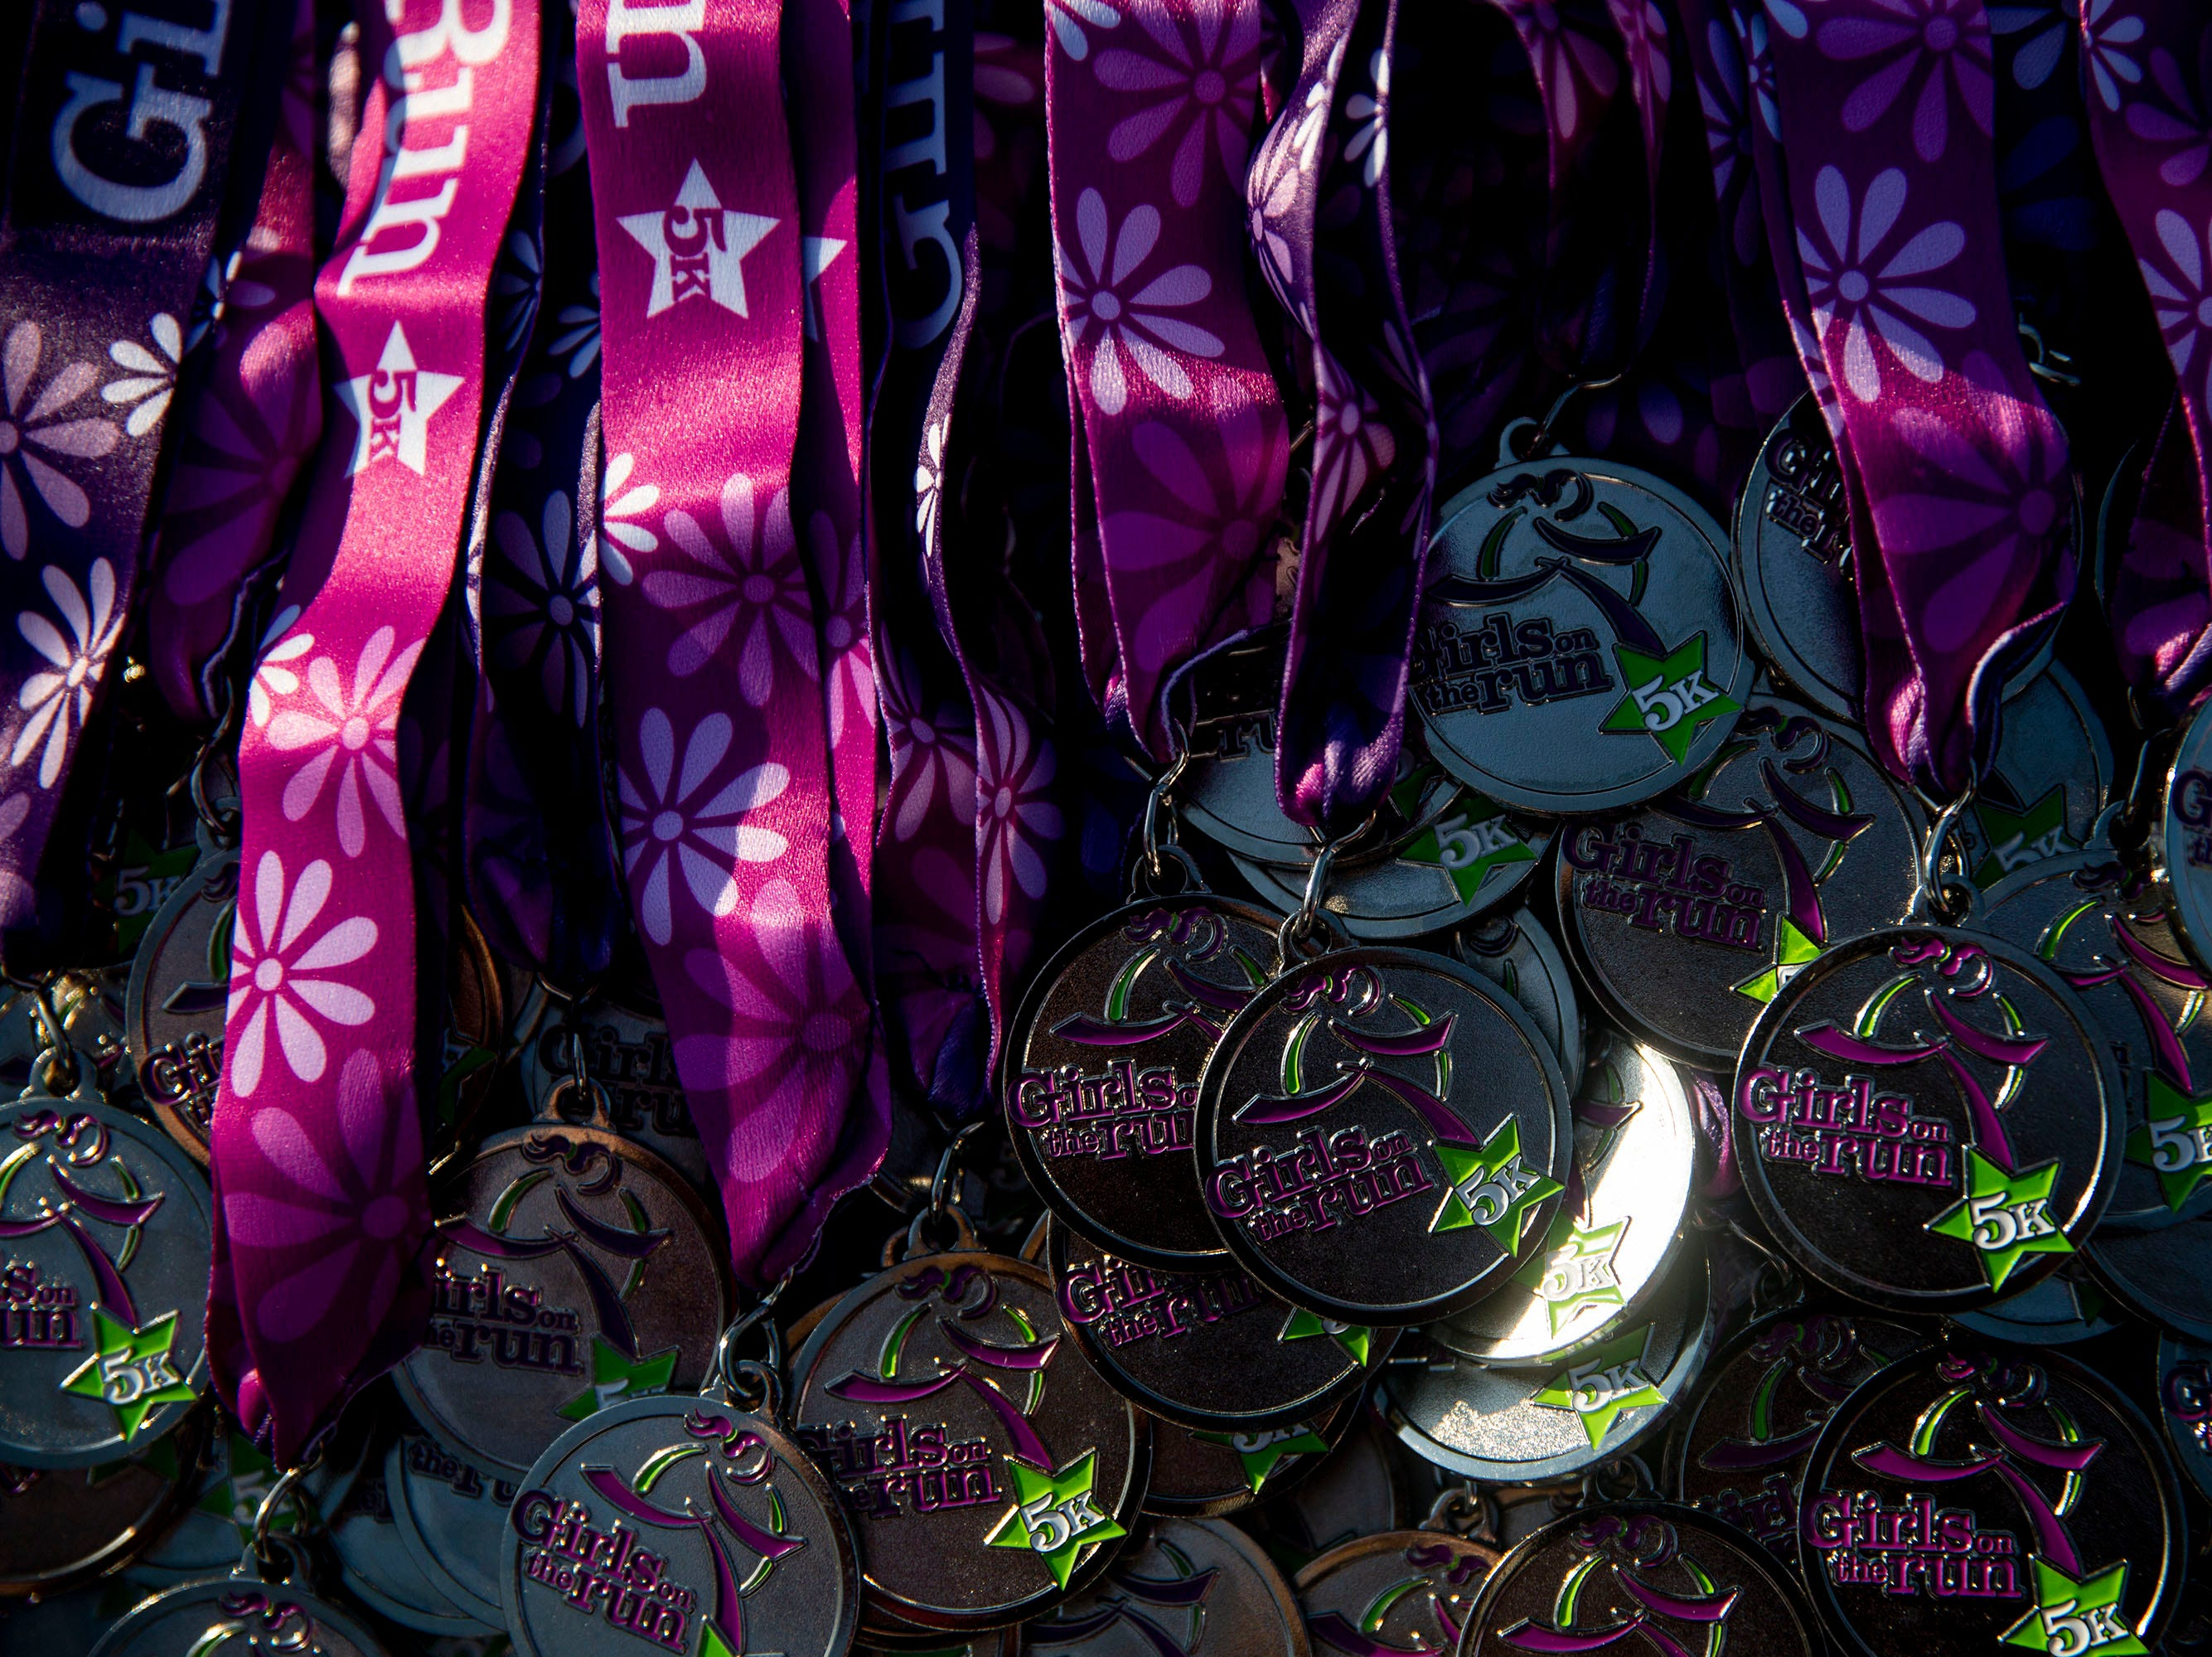 Medals wait for runners to finish the Girls on the Run celebration 5K on Tuesday, May 14, 2019, in Water Works Park in Des Moines.